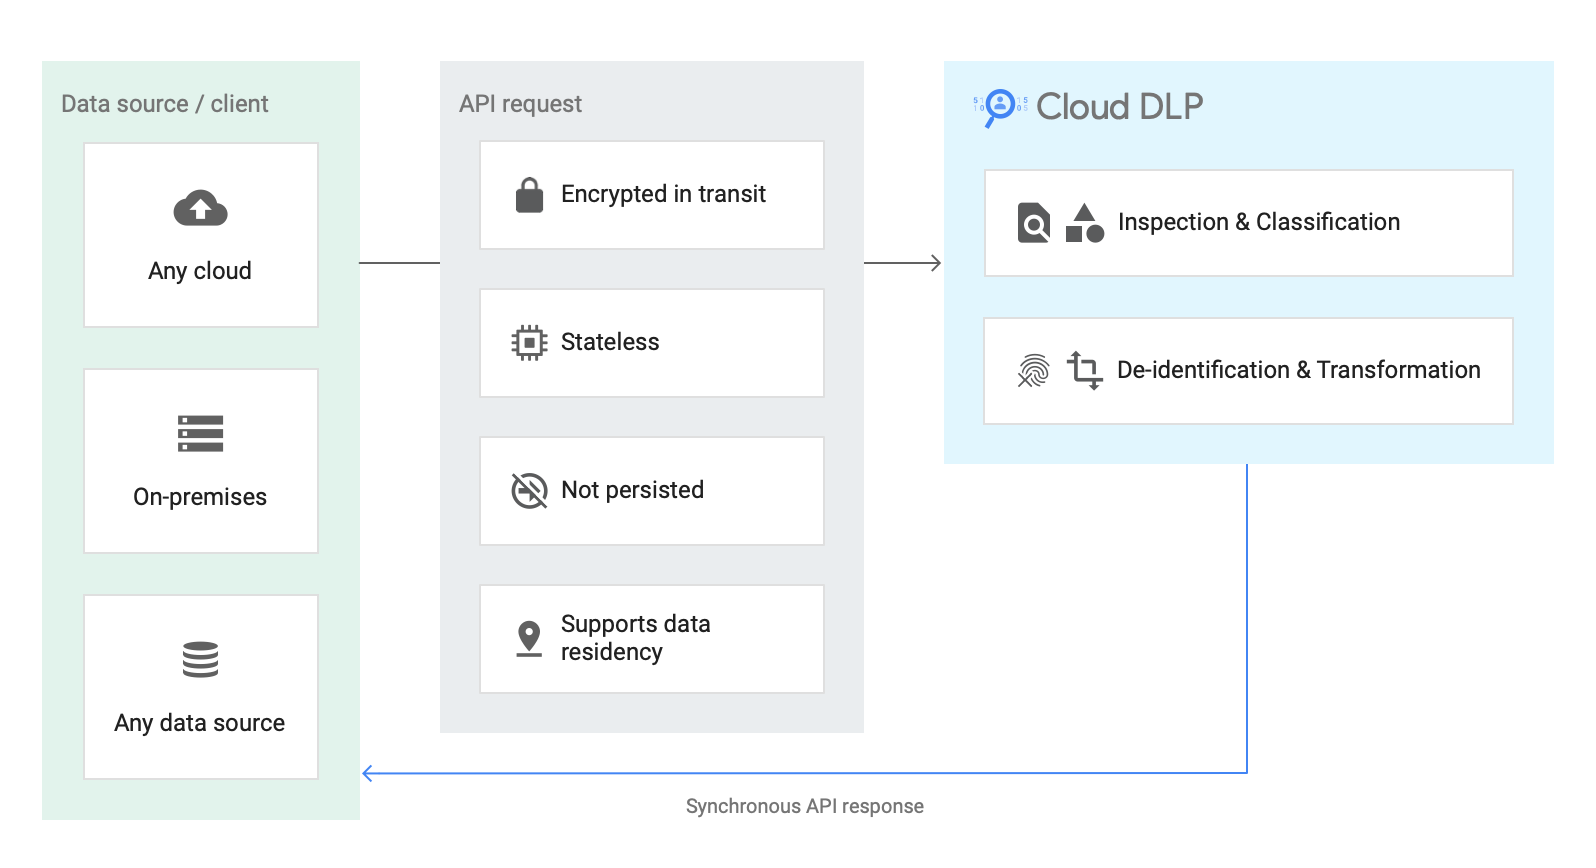 Diagram of content methods dataflow, showing a client sending data via an API request to Cloud DLP, which can inspect and classify or de-identify and transform the data, sending a synchronous API response to the client.